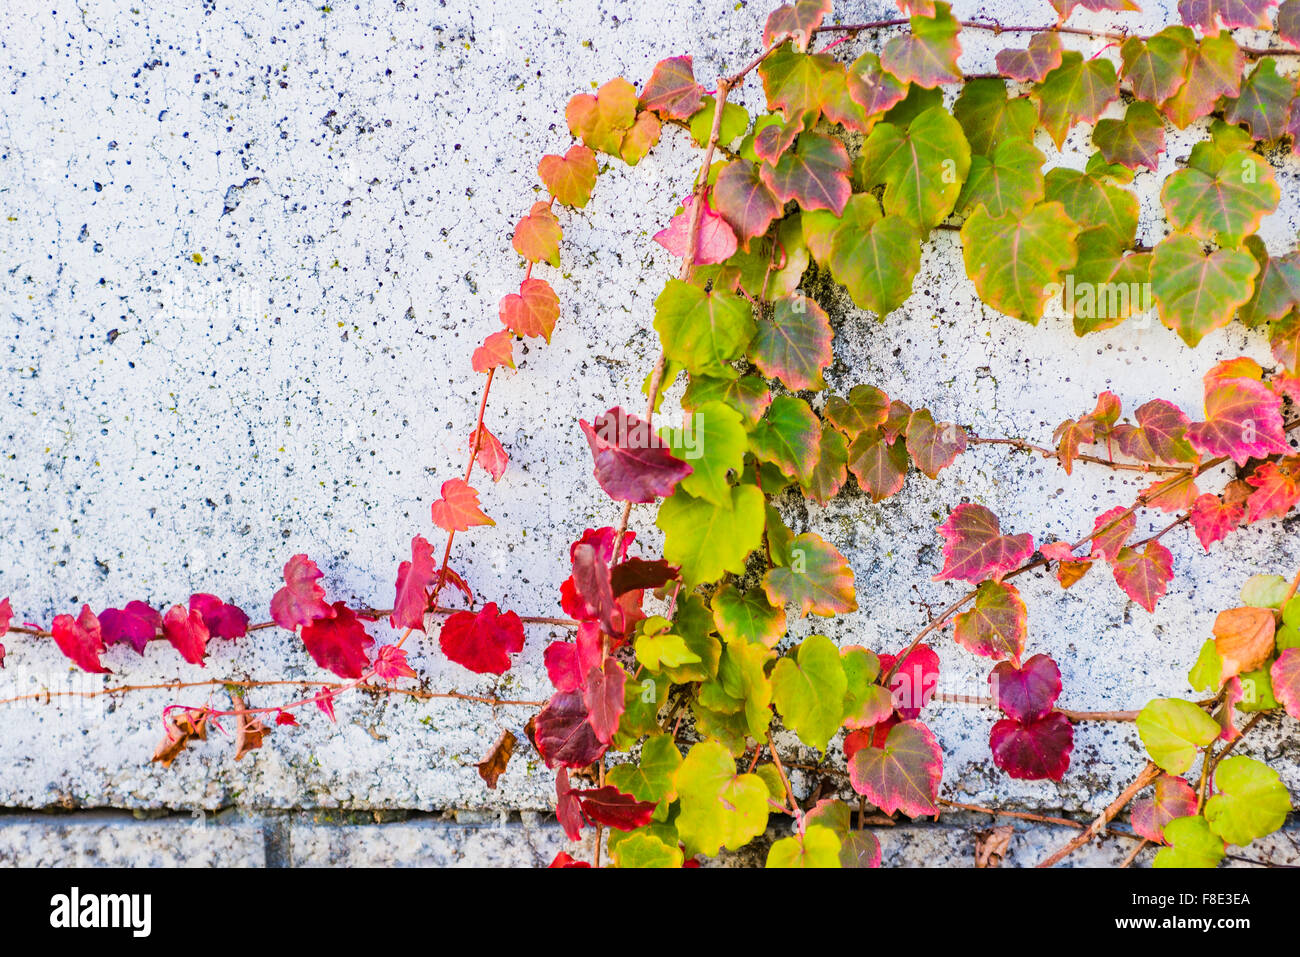 Parthenocissus tricuspidata is a flowering plant in the grape family. Autumn colors. - Stock Image